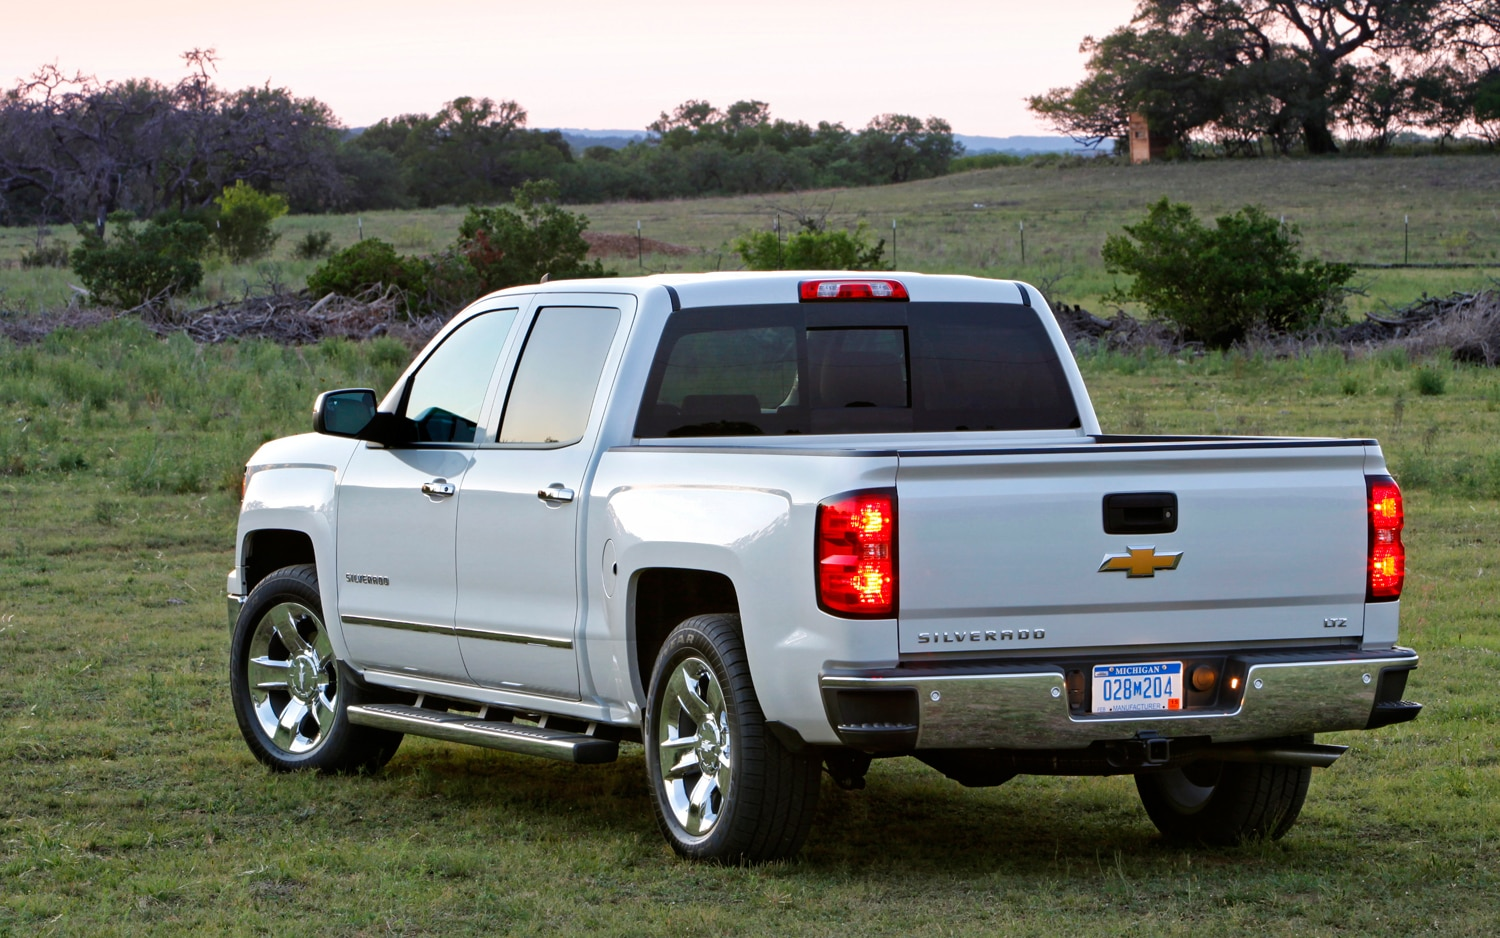 Silverado 2013 chevy silverado recalls : 2014 Chevrolet Silverado and GMC Sierra Rated 5 Stars by NHTSA